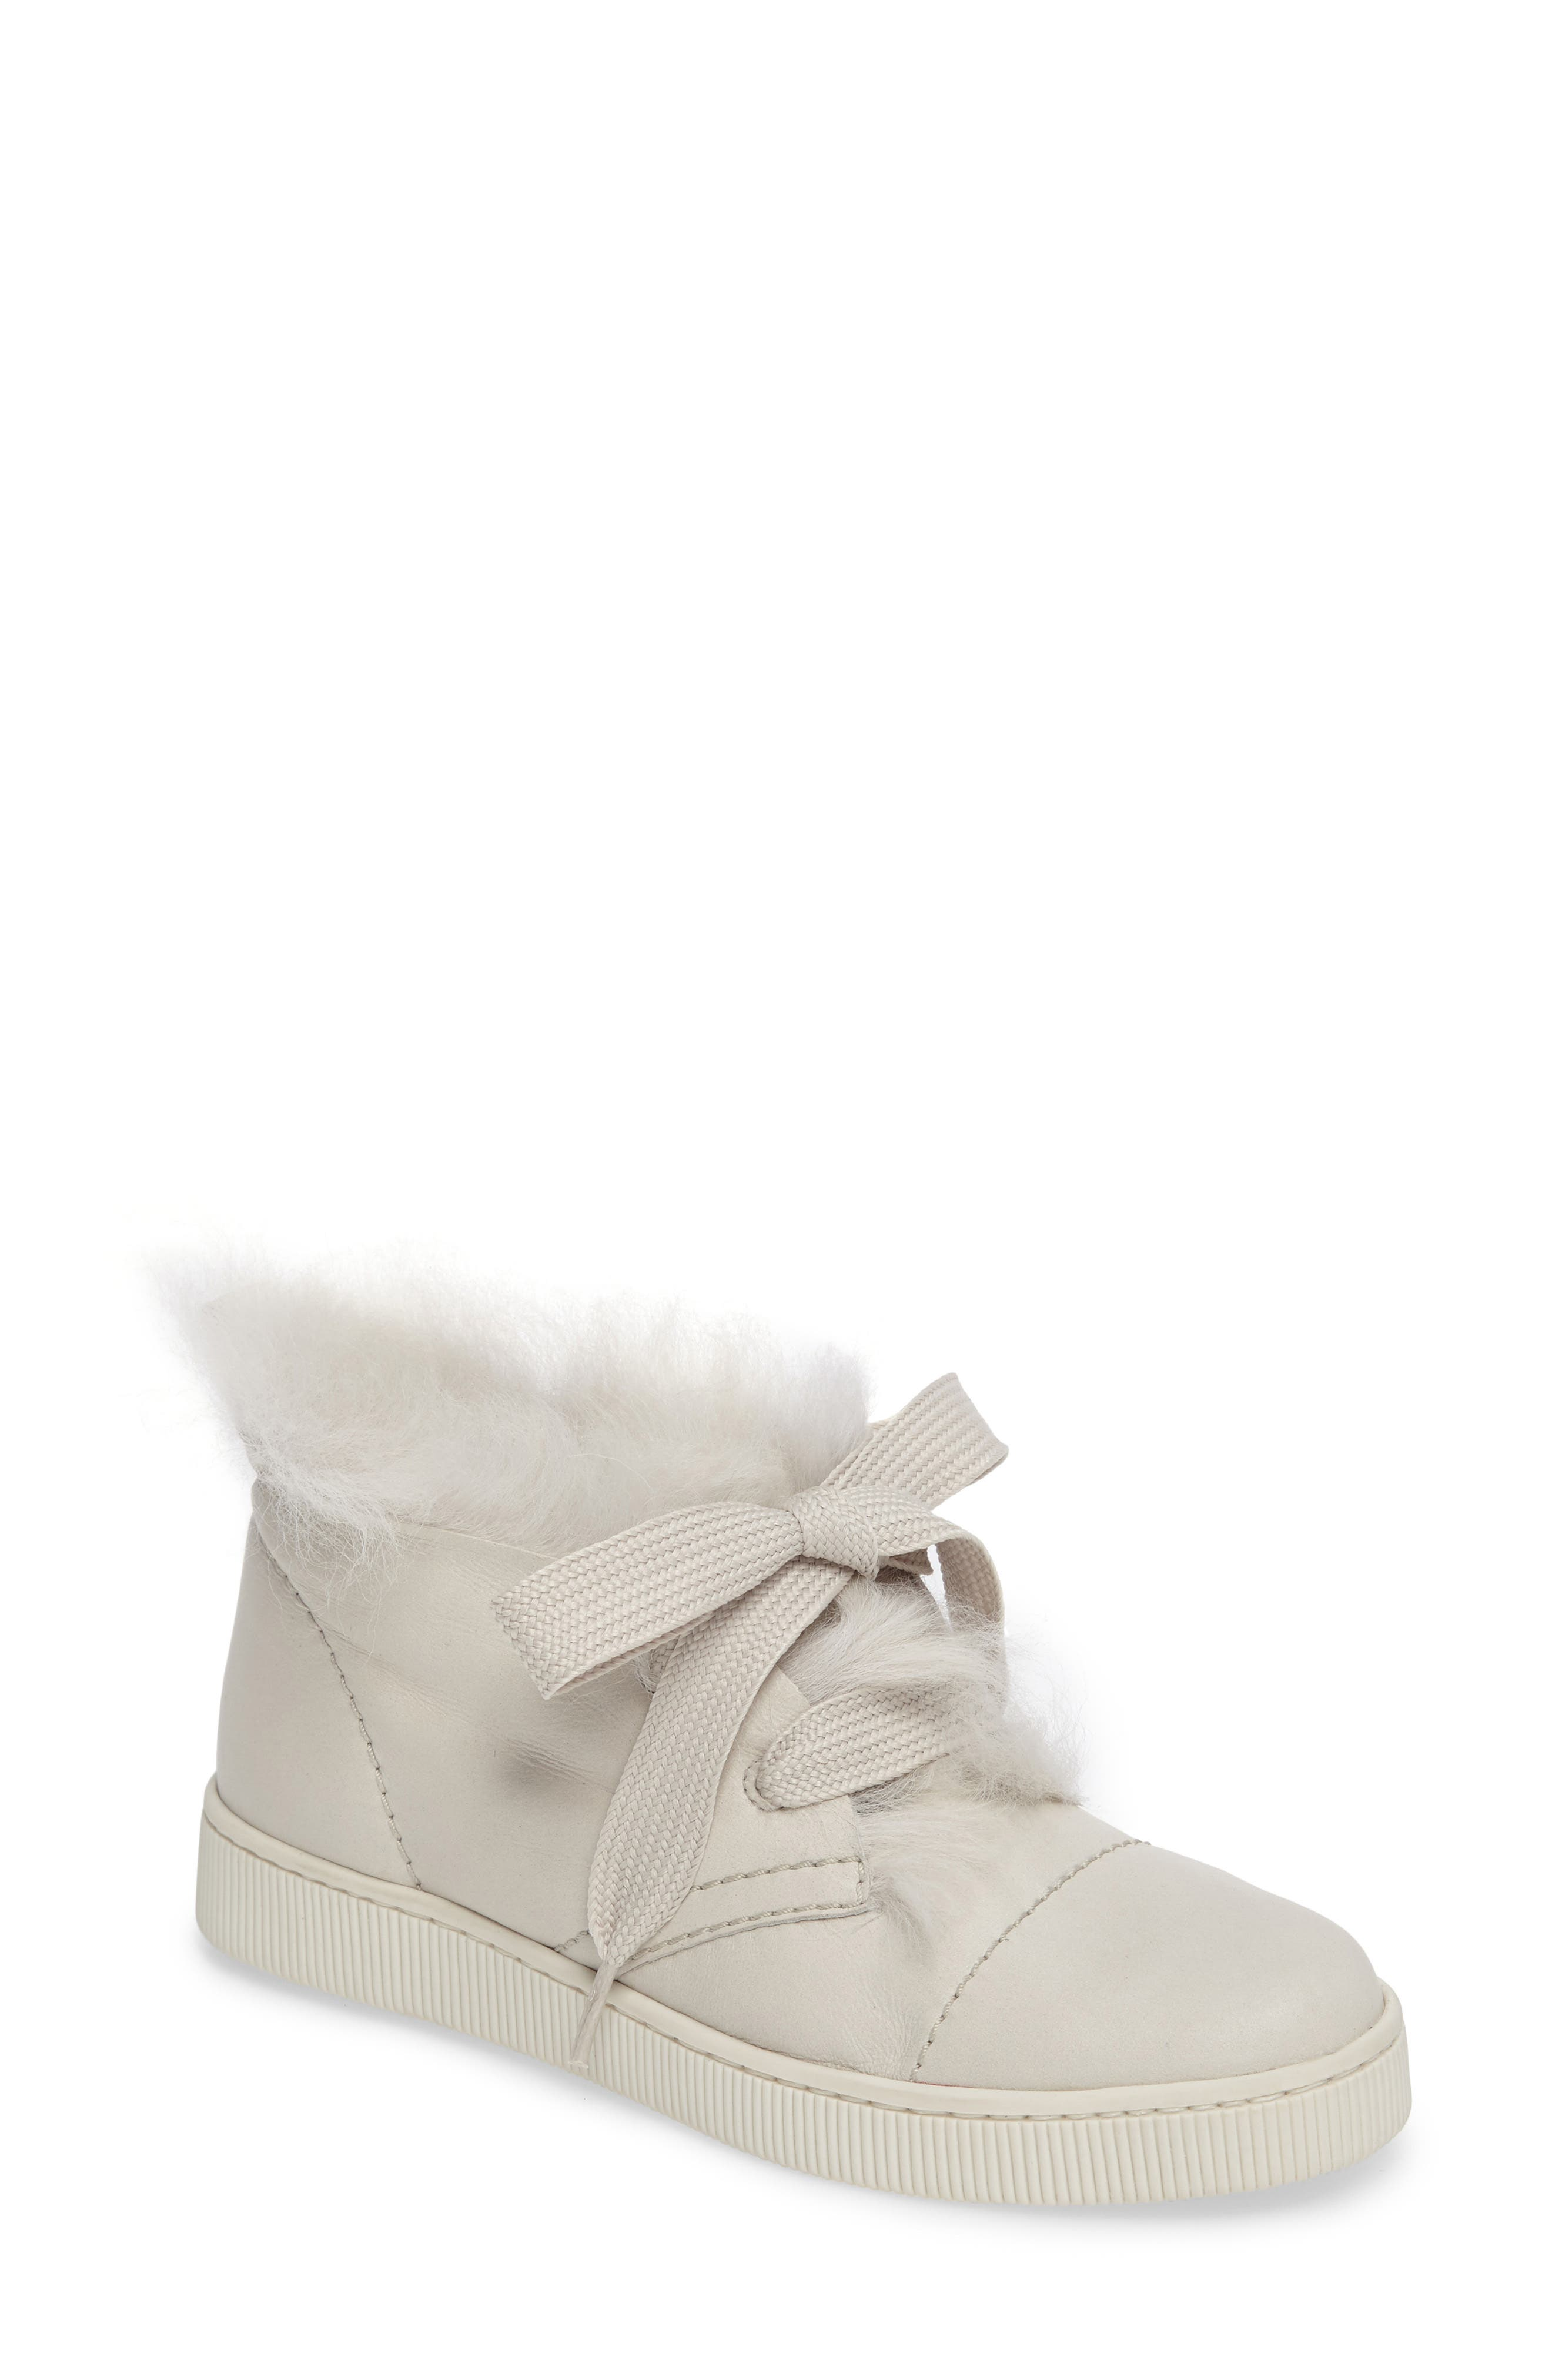 Parley Genuine Shearling & Leather Sneaker,                             Main thumbnail 2, color,